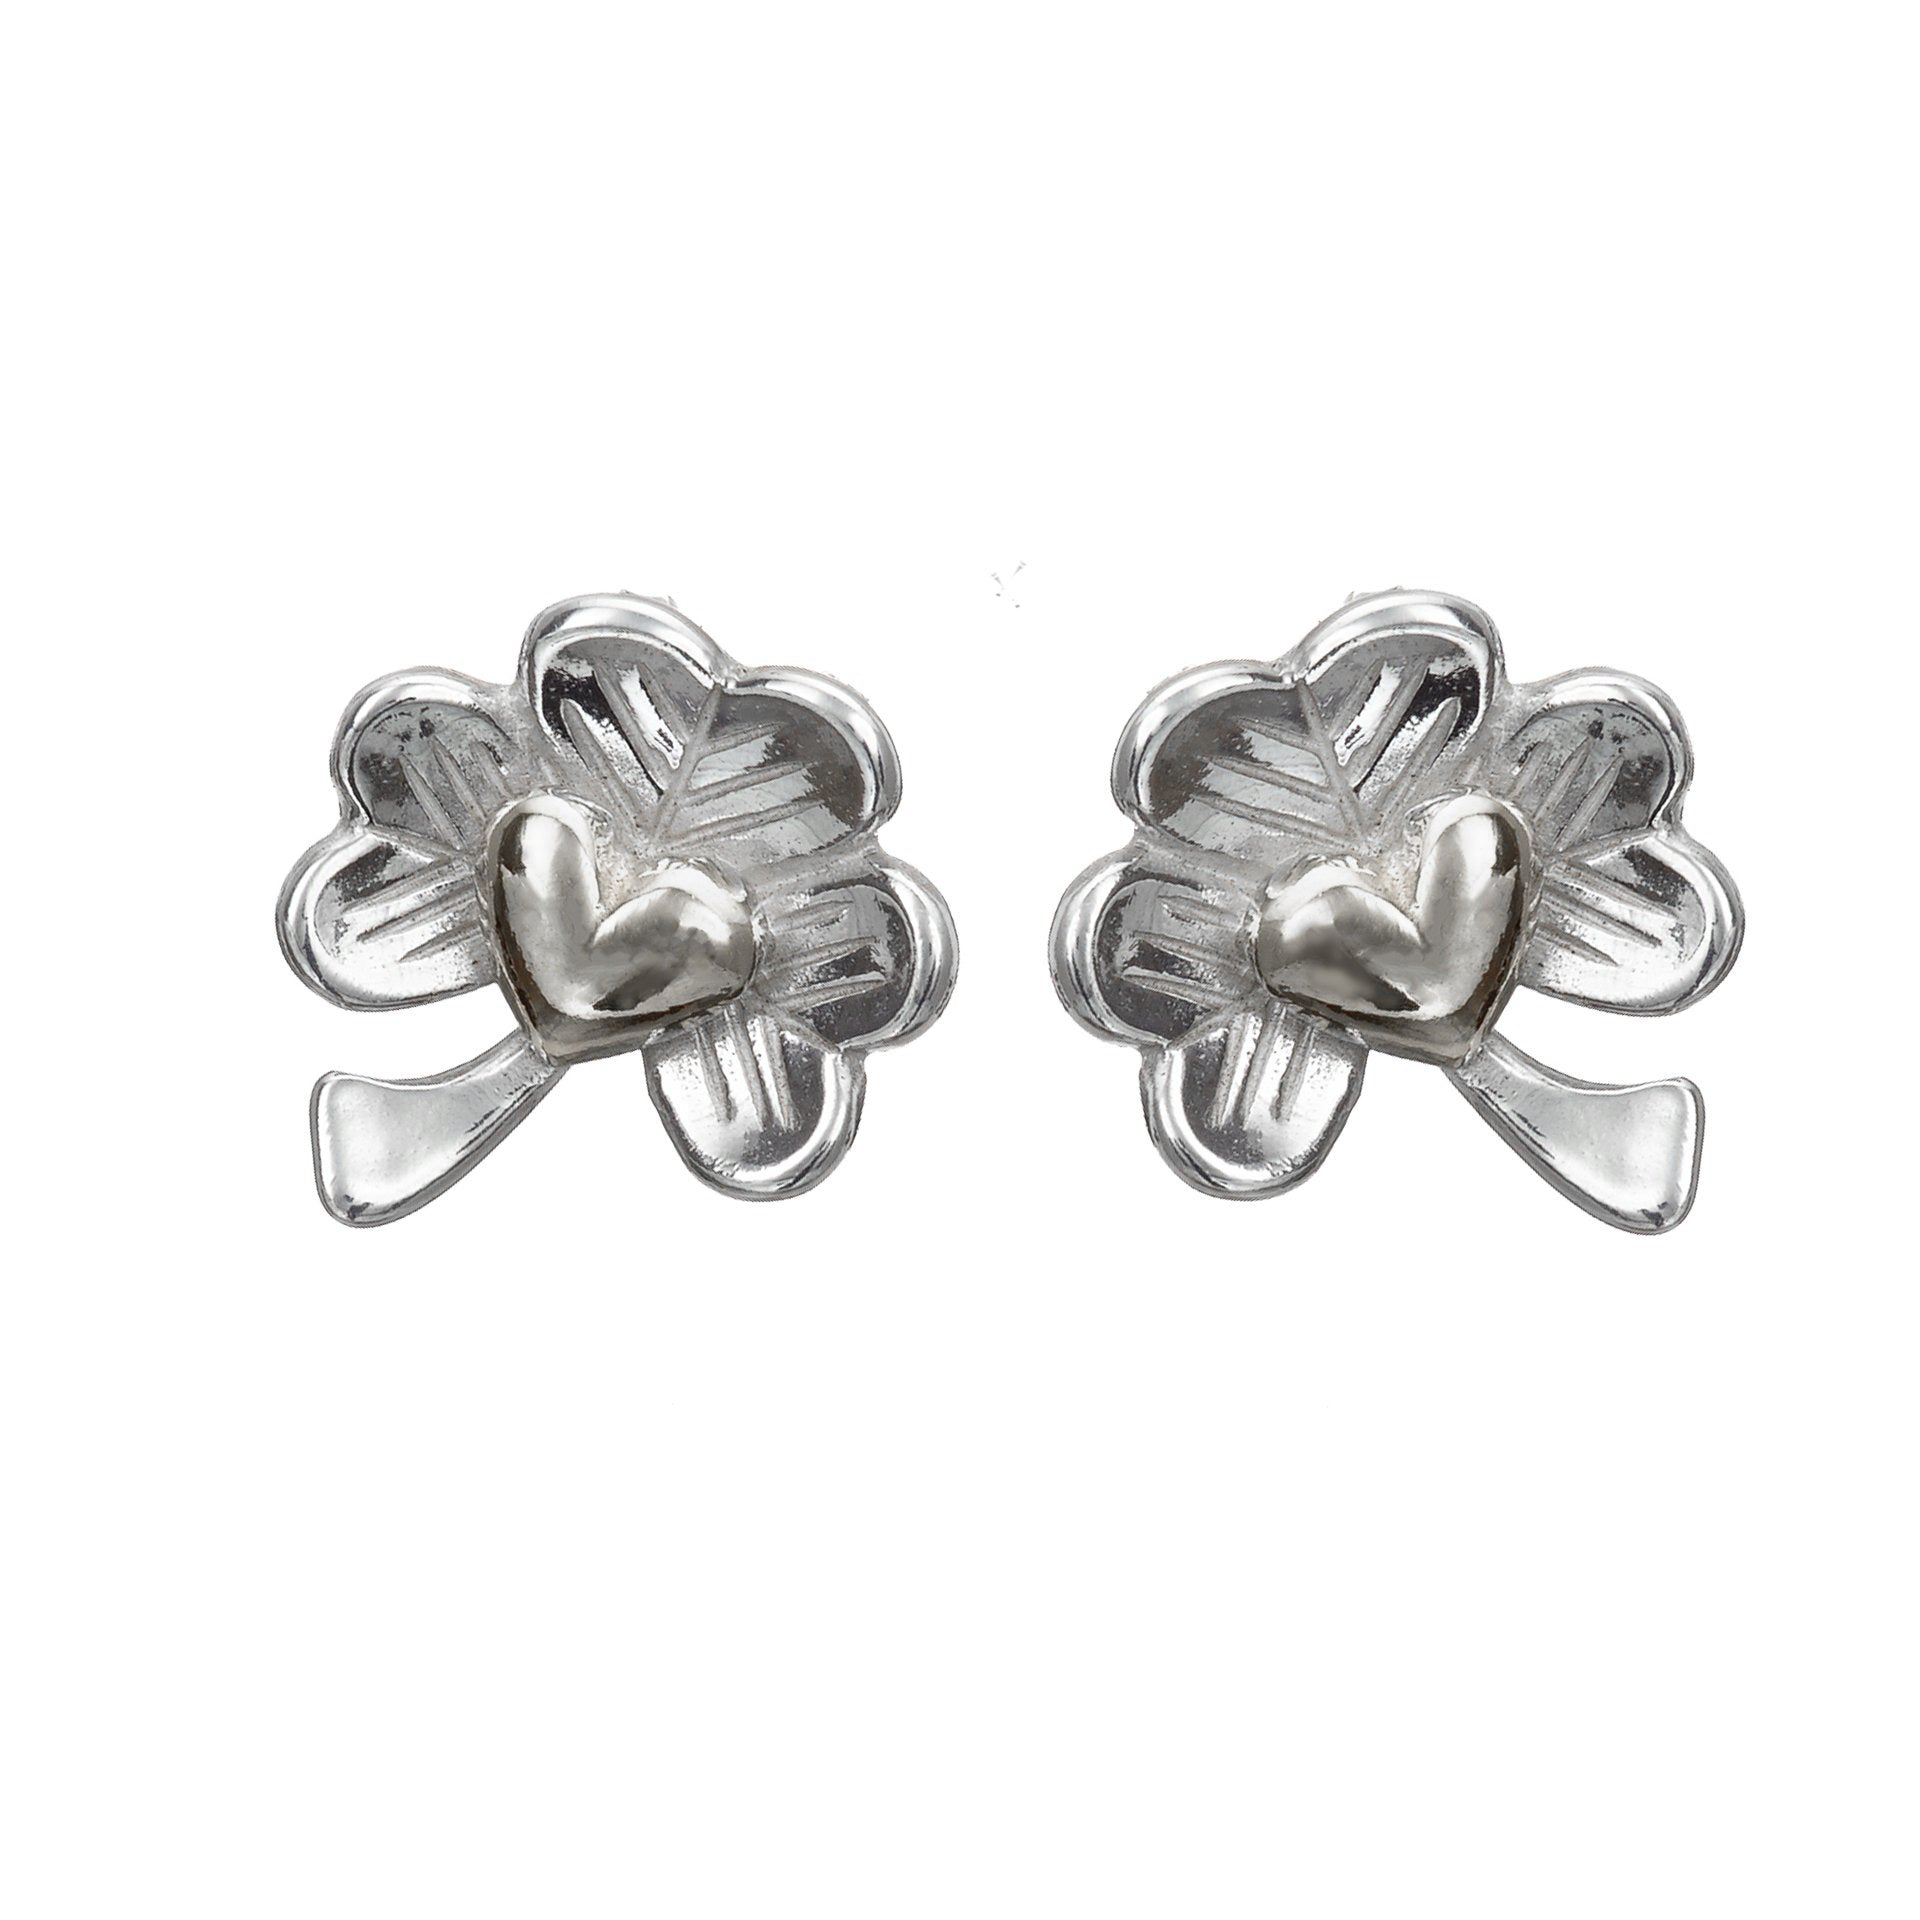 Love of Ireland Stud Earrings, Irish Design handcrafted from Sterling Silver